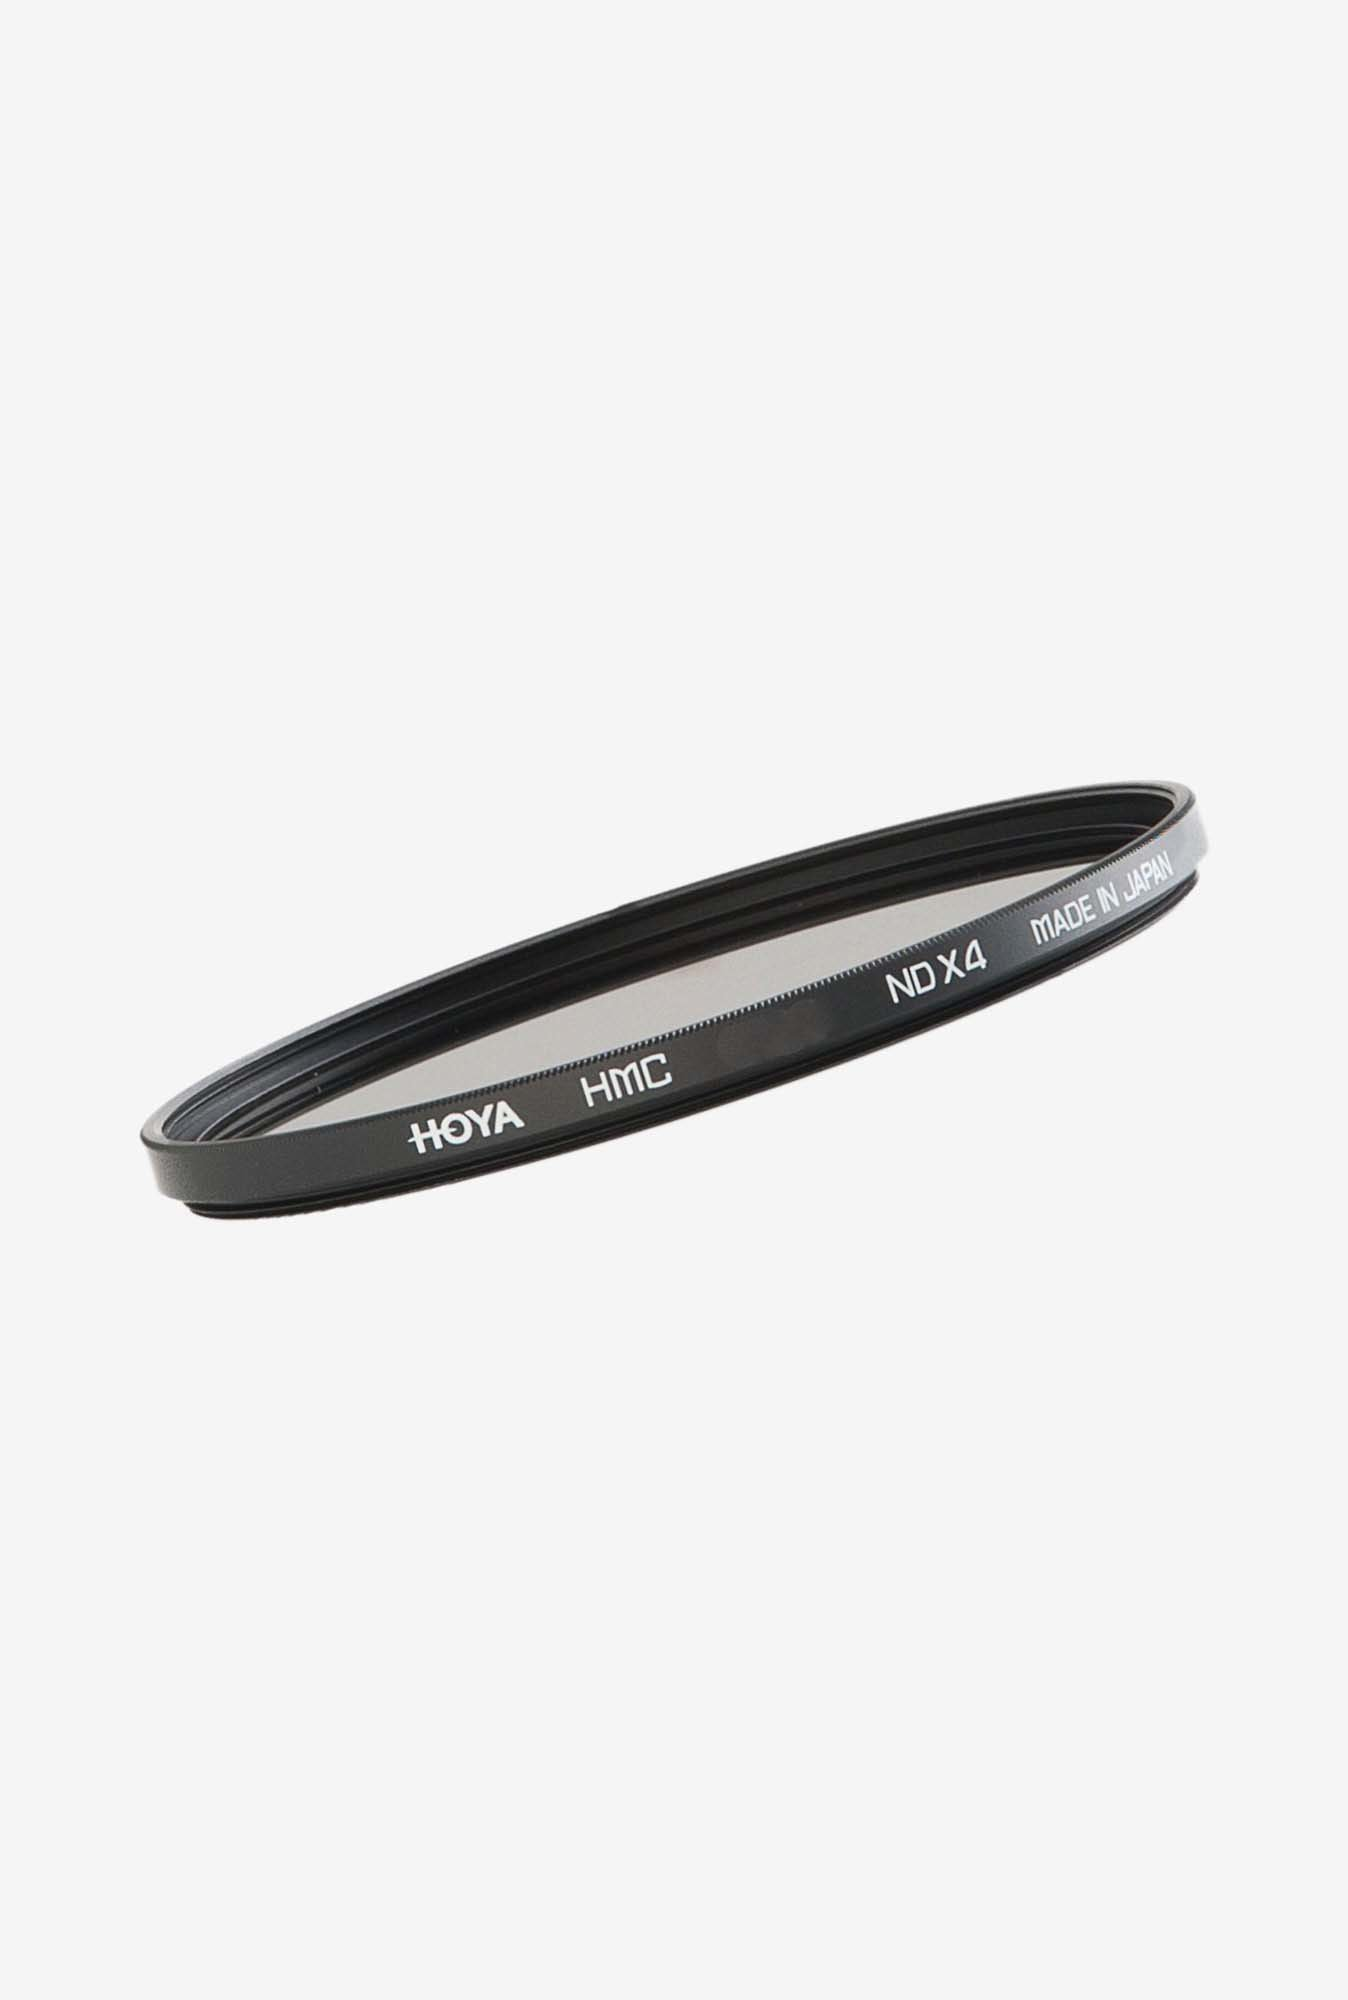 Hoya 62 mm Neutral Density Filter (Black)